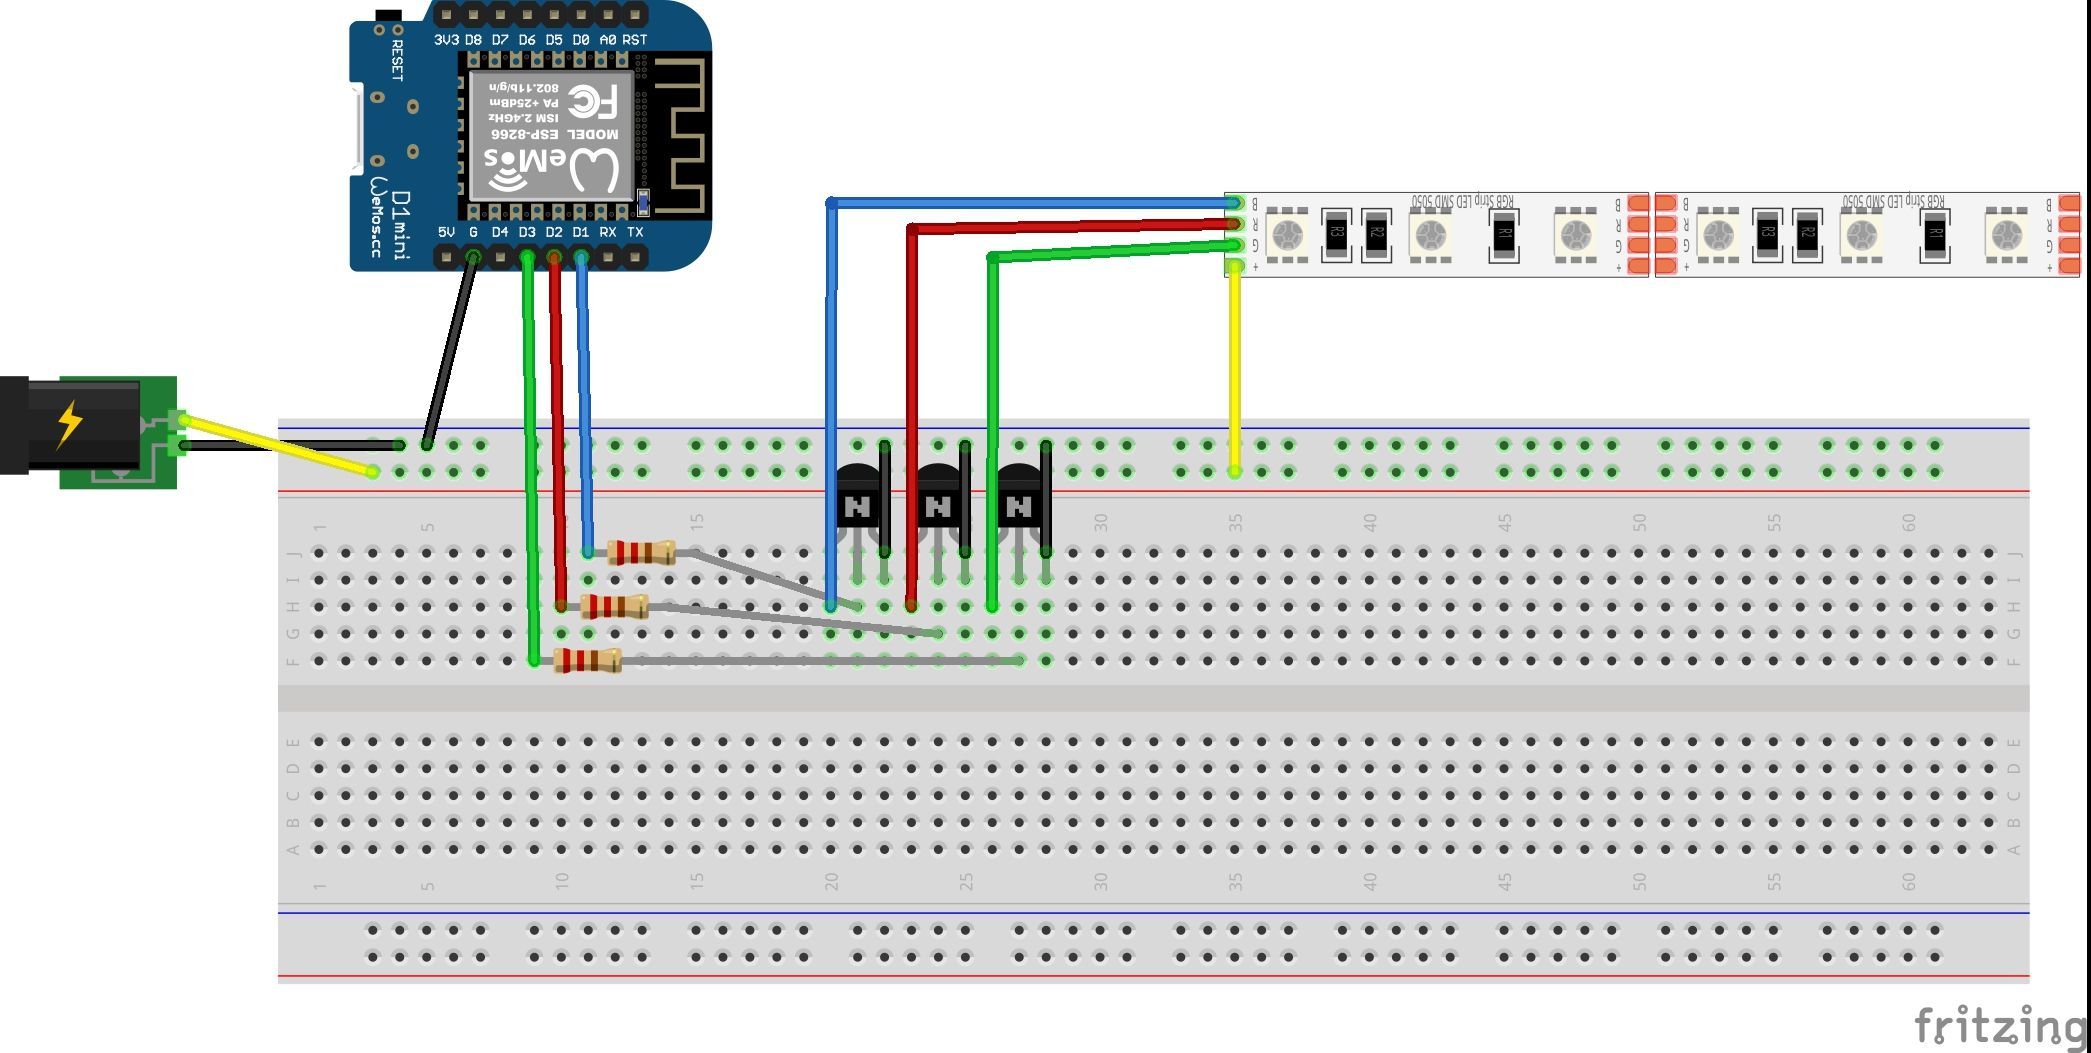 Homekit Philips Hue Clone With Standard Non Addressable Rgb Strip Led Circuit Arduino Use For Projects Here Is The First Accessory Our System Using An Esp8266 Convenience Im U